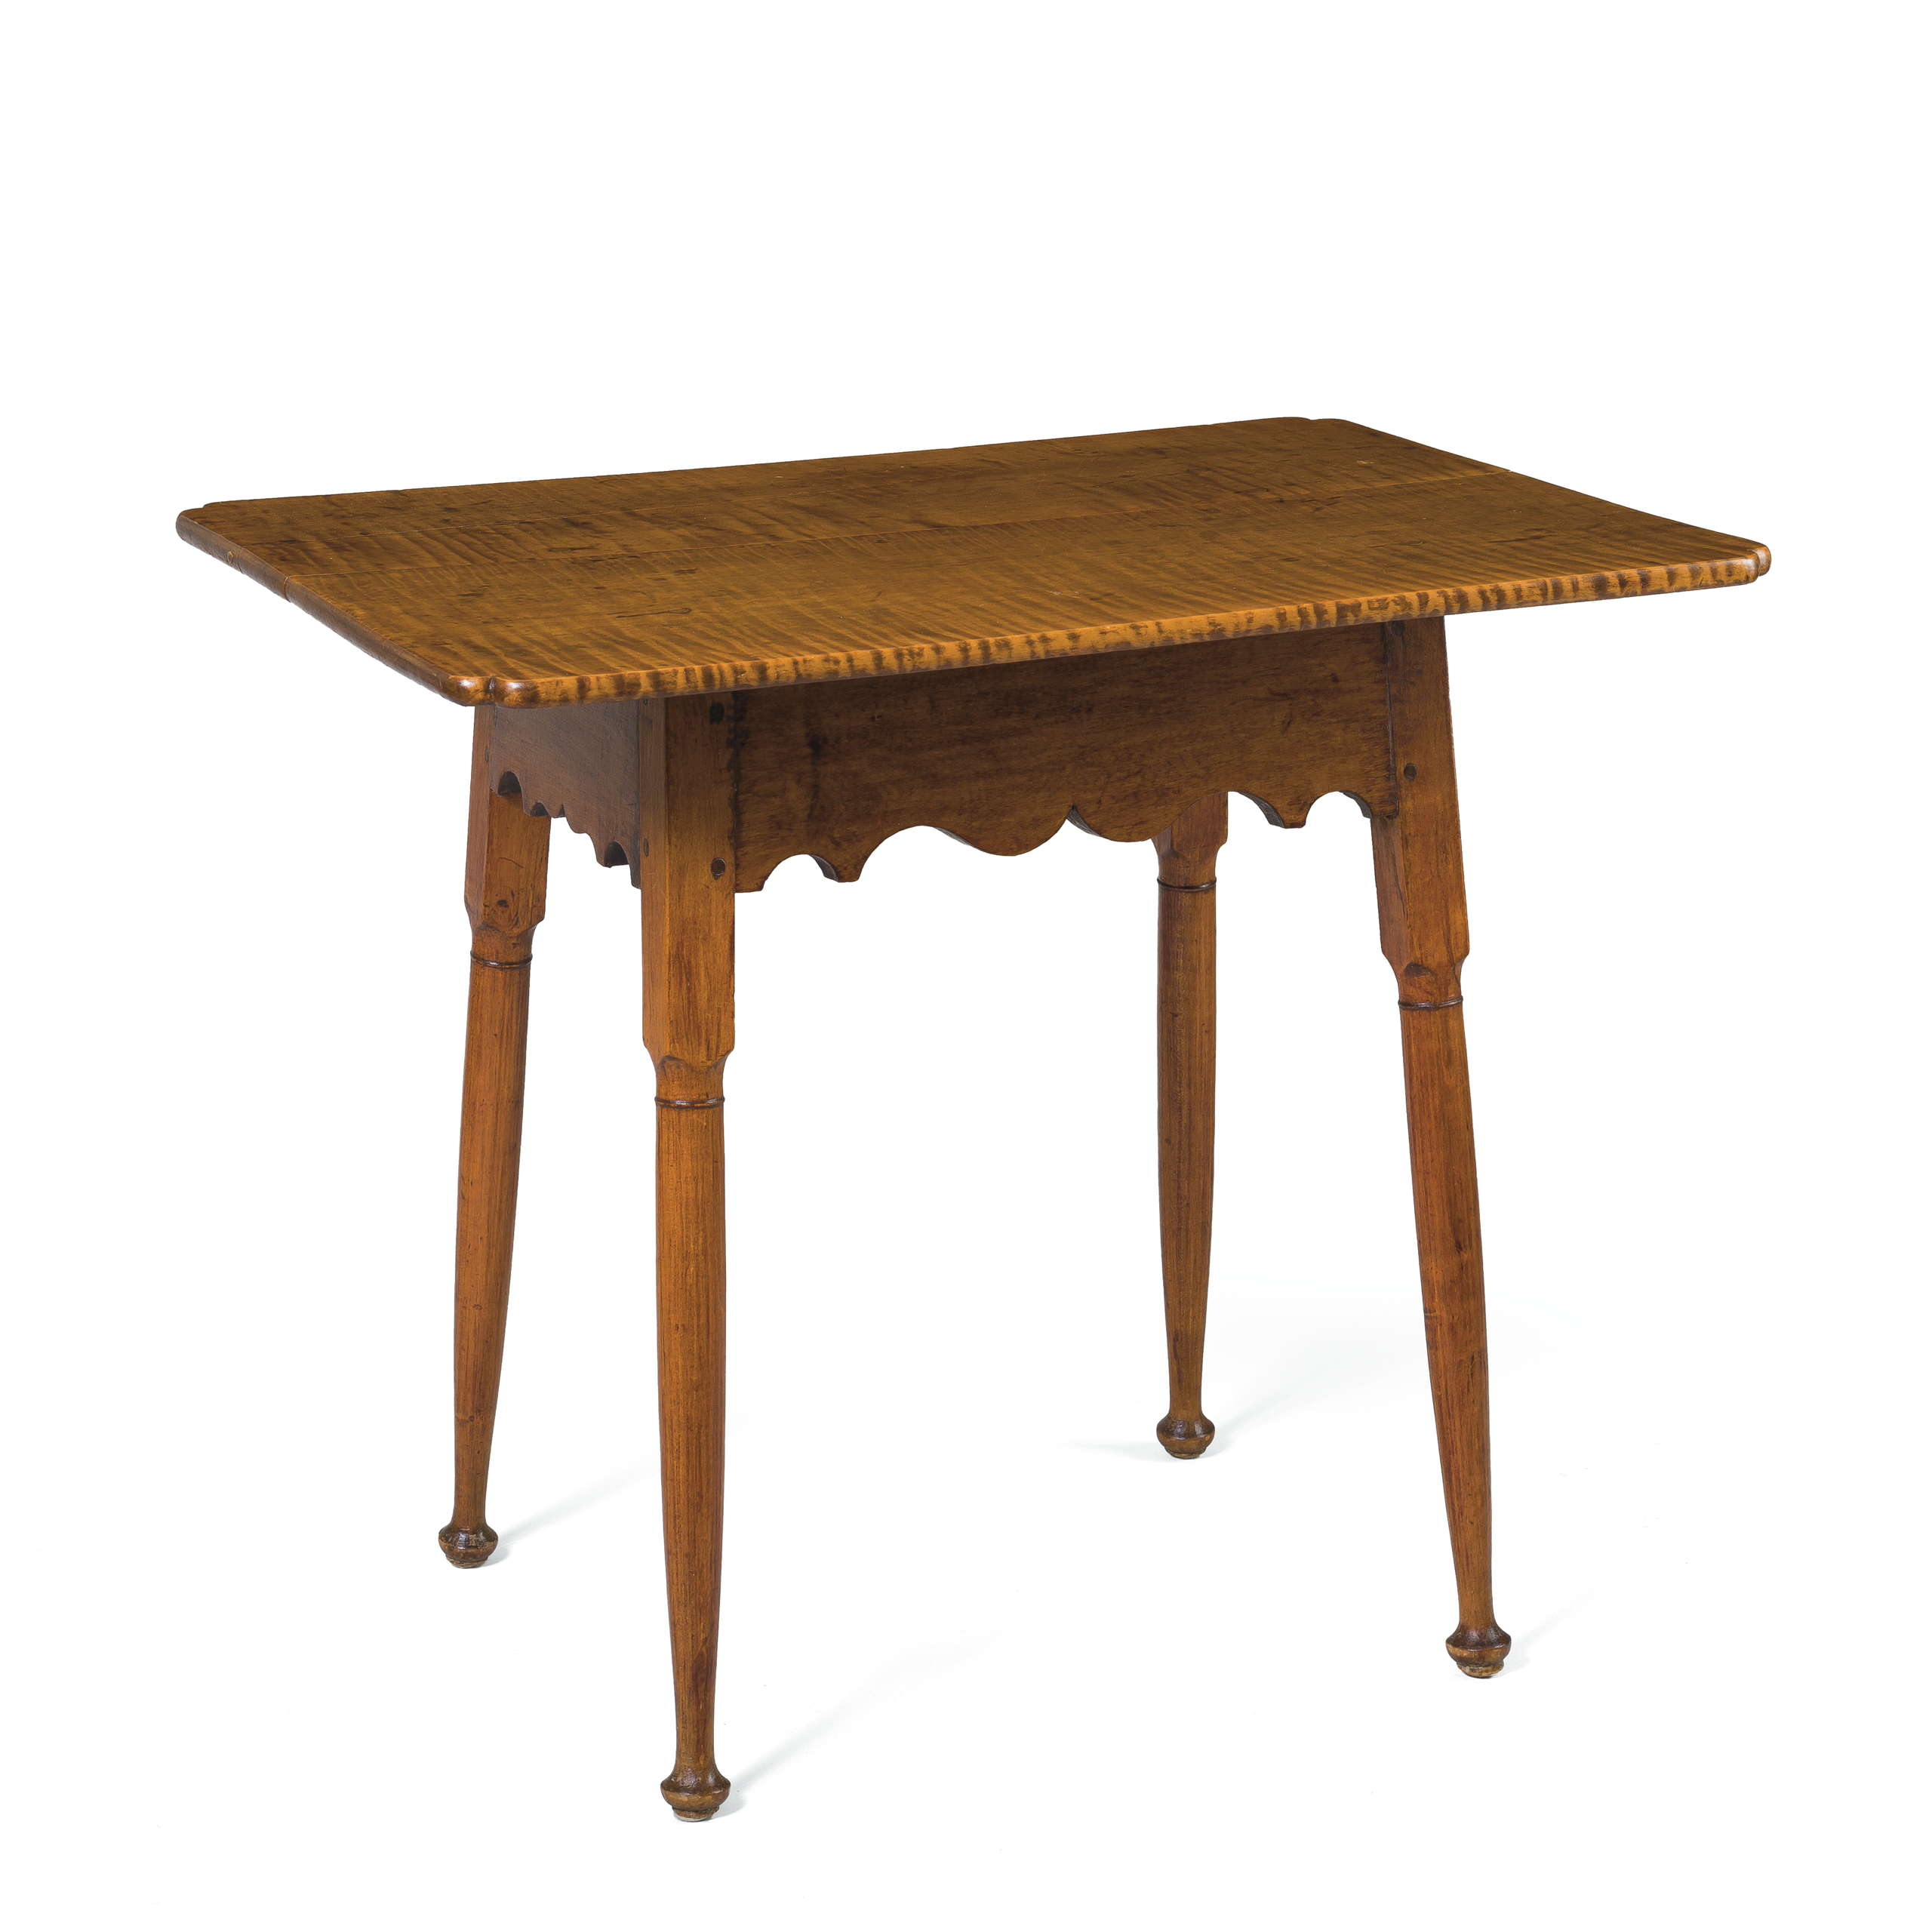 NEW ENGLAND COUNTRY QUEEN ANNE MAPLE TEA TABLE